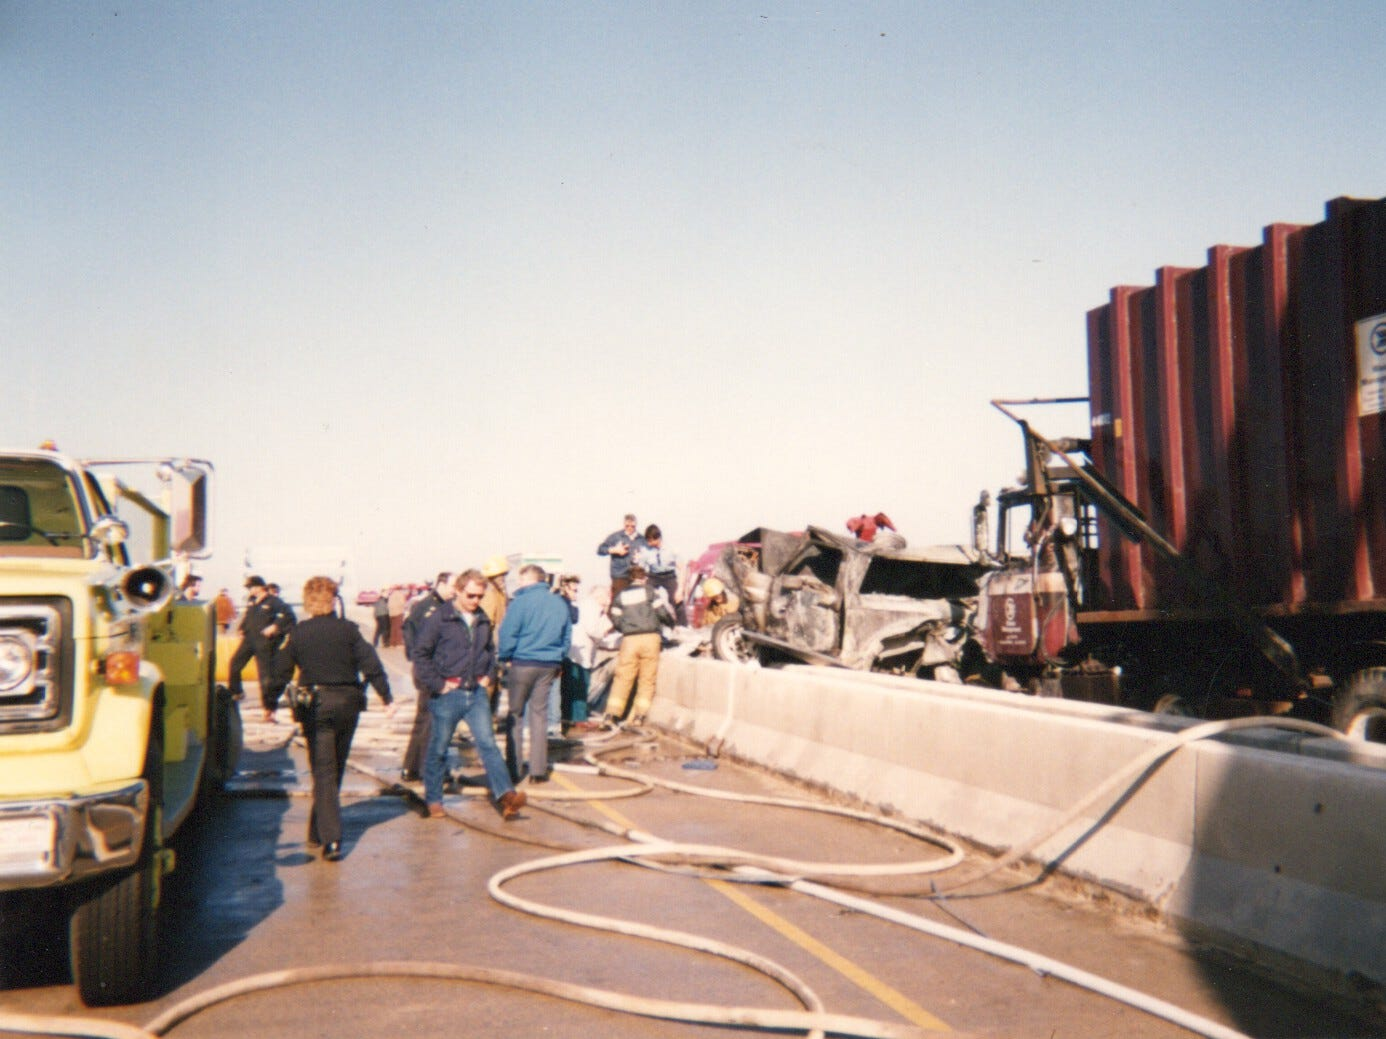 Foggy conditions contributed to a March 12, 1990 crash on the Leo Frigo Memorial Bridge that involved more than 50 vehicles and resulted in three deaths.